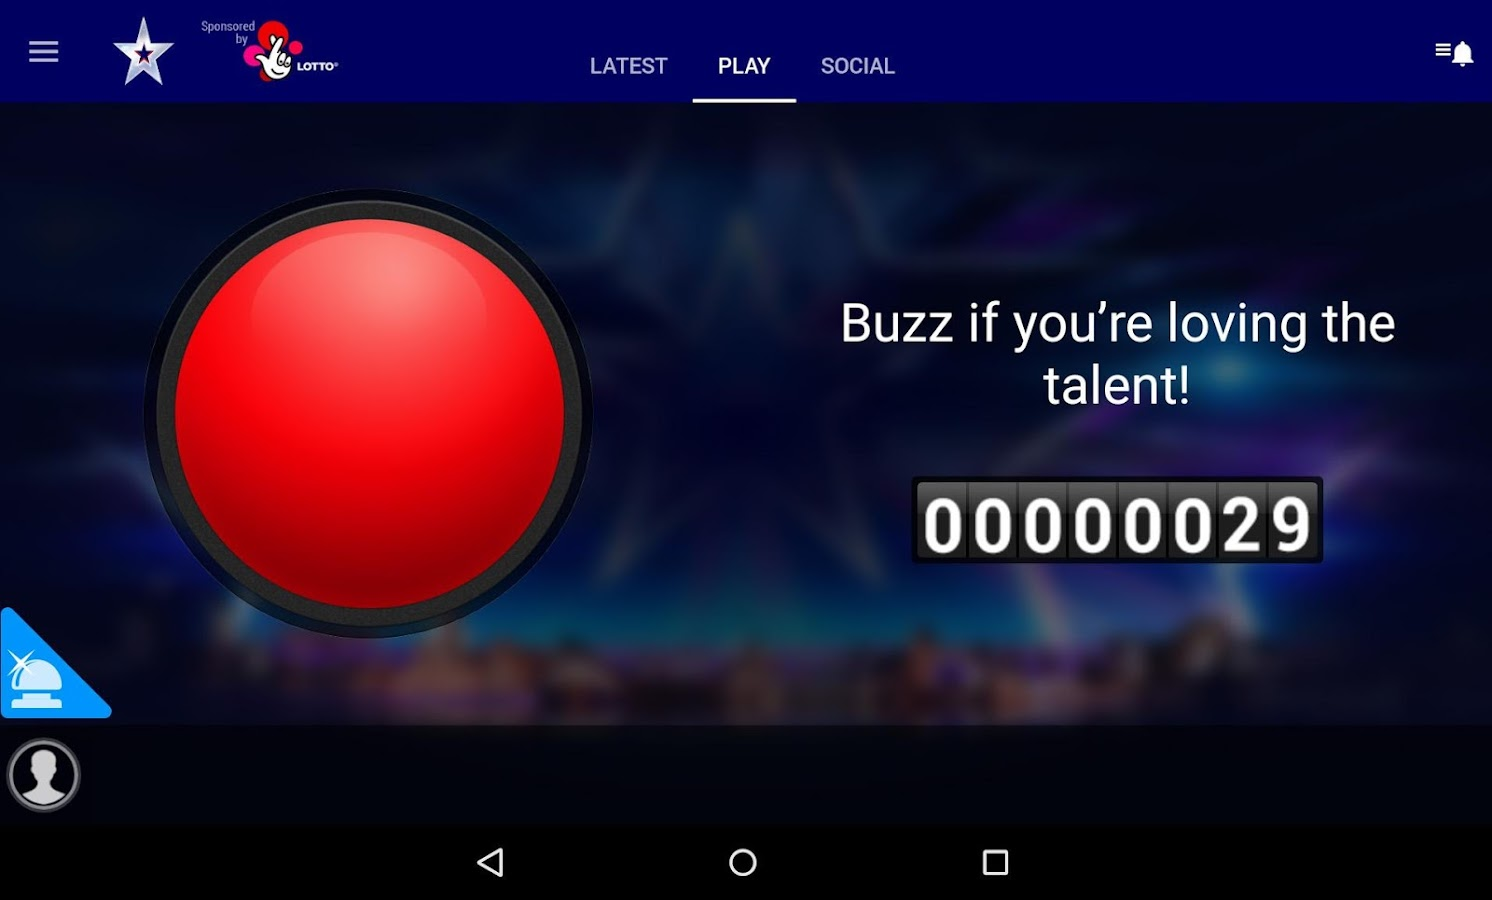 Britain's Got Talent 2016 – Android Apps on Google Play